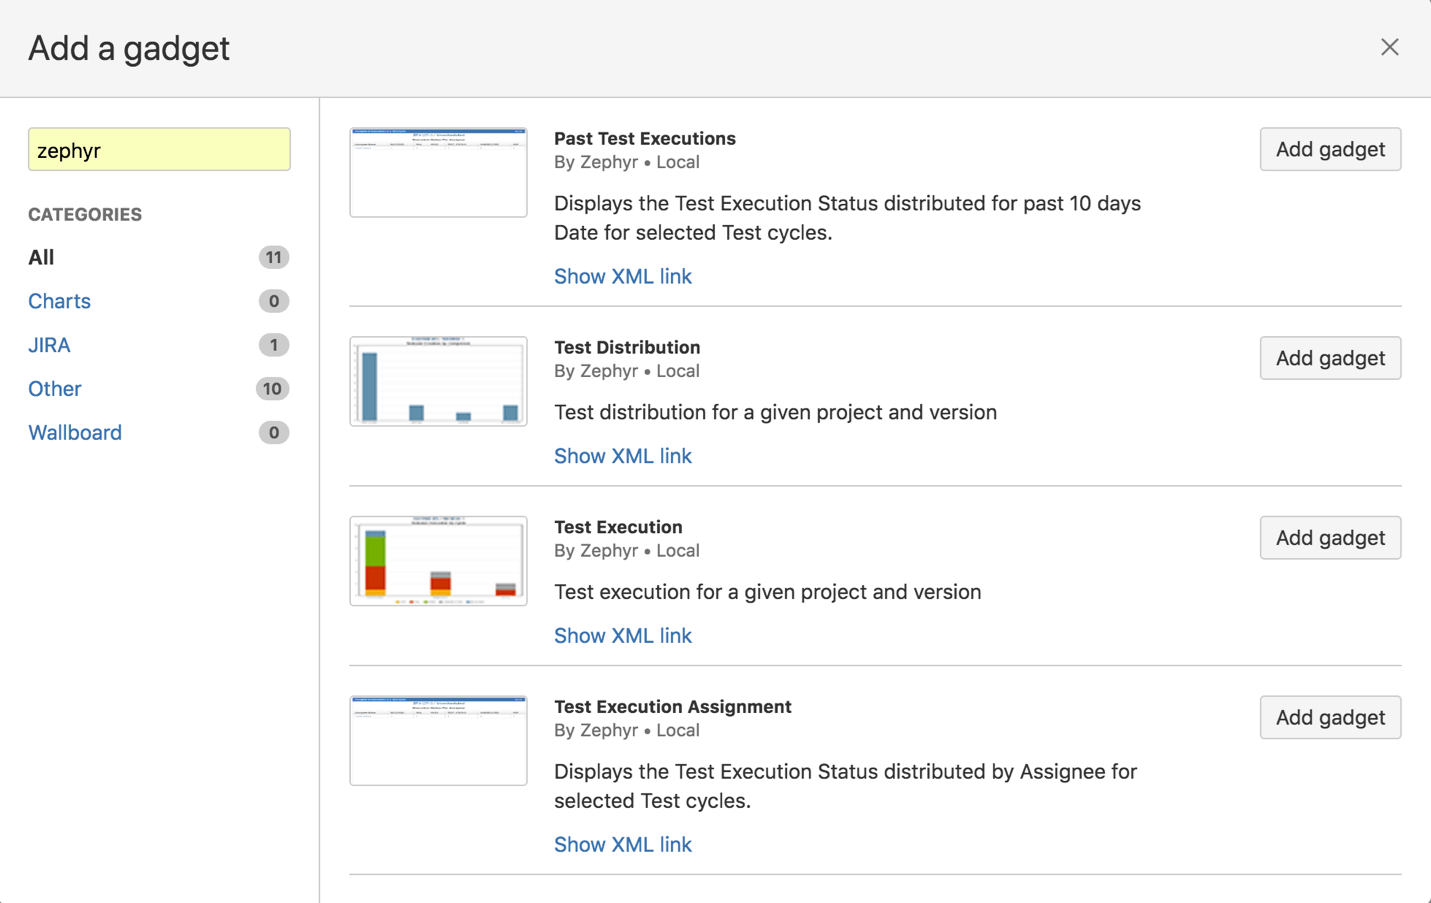 This will add the gadget to your dashboard to help your users track and  view your testing progress across all projects for your testing activities.